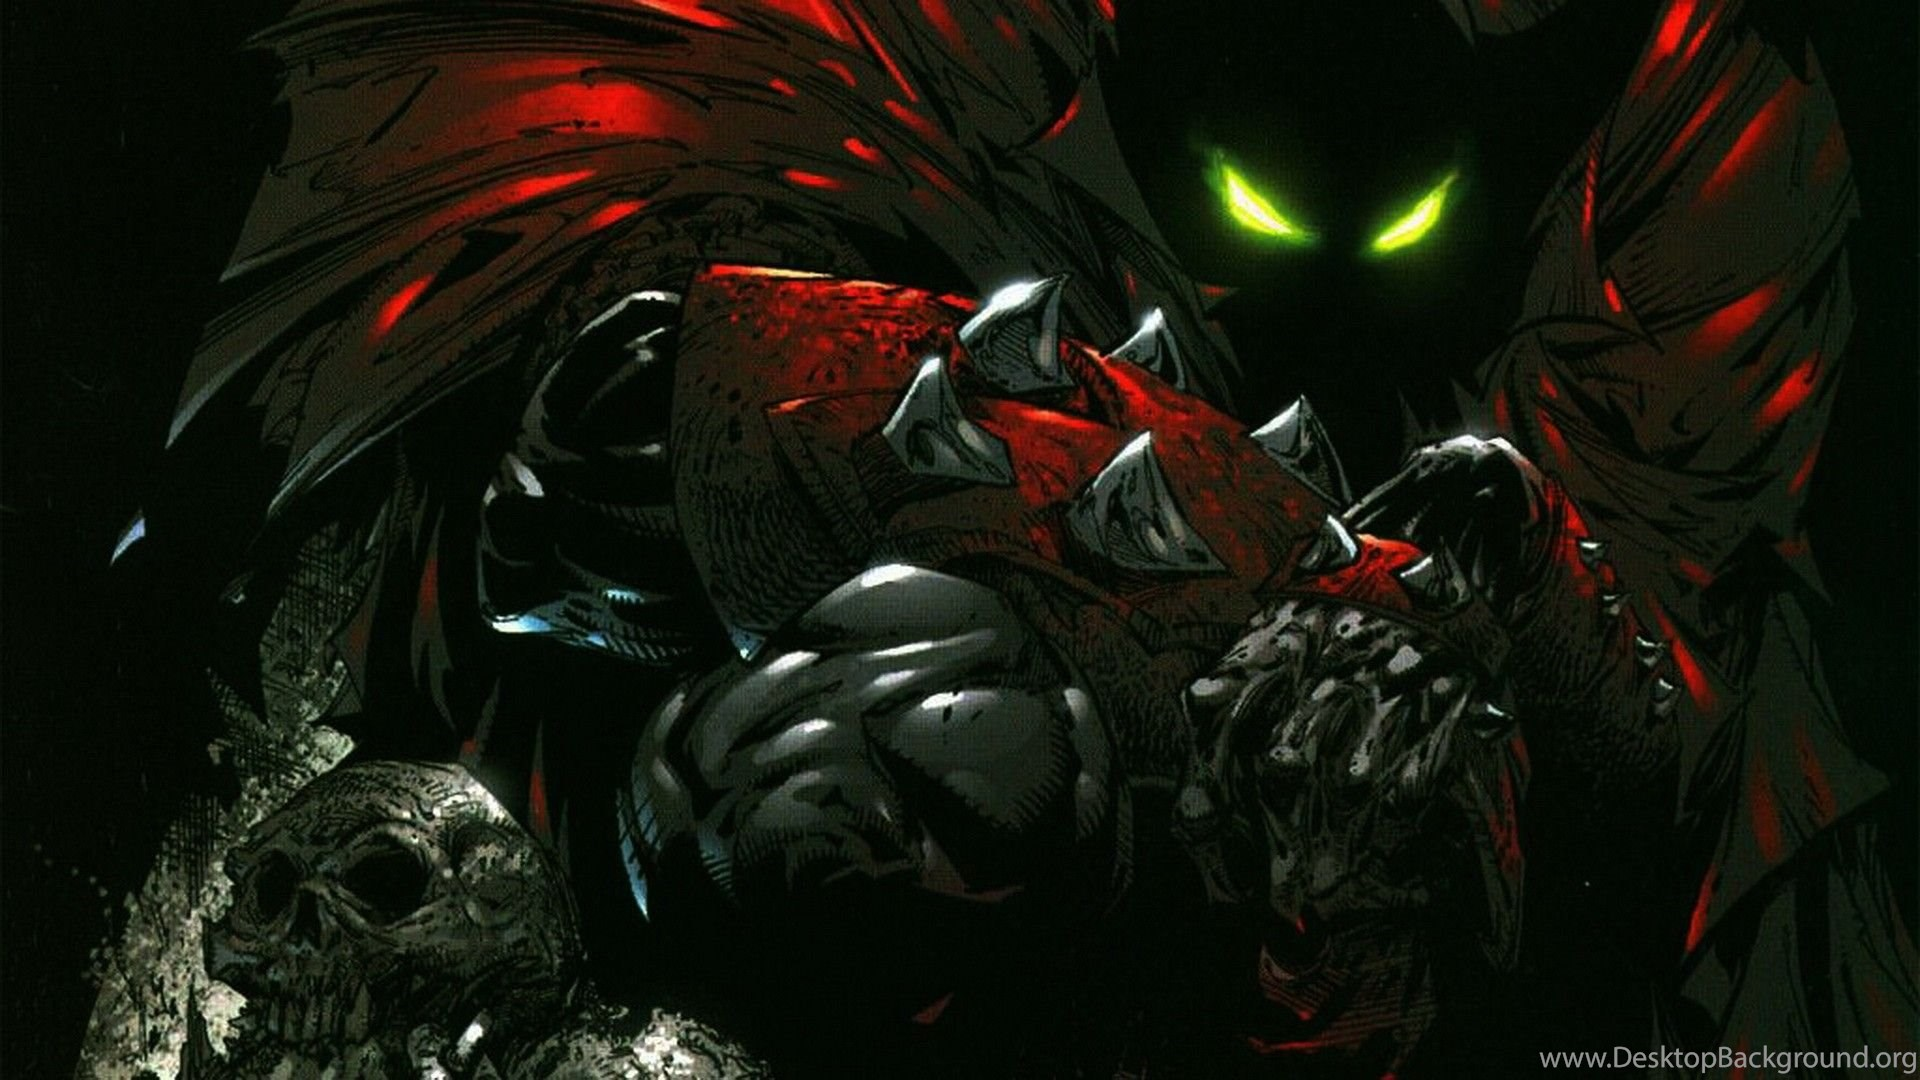 Spawn Wallpaper Hd 1920x1080: Spawn HD Wallpapers Made By Todd McFarlane Ready As